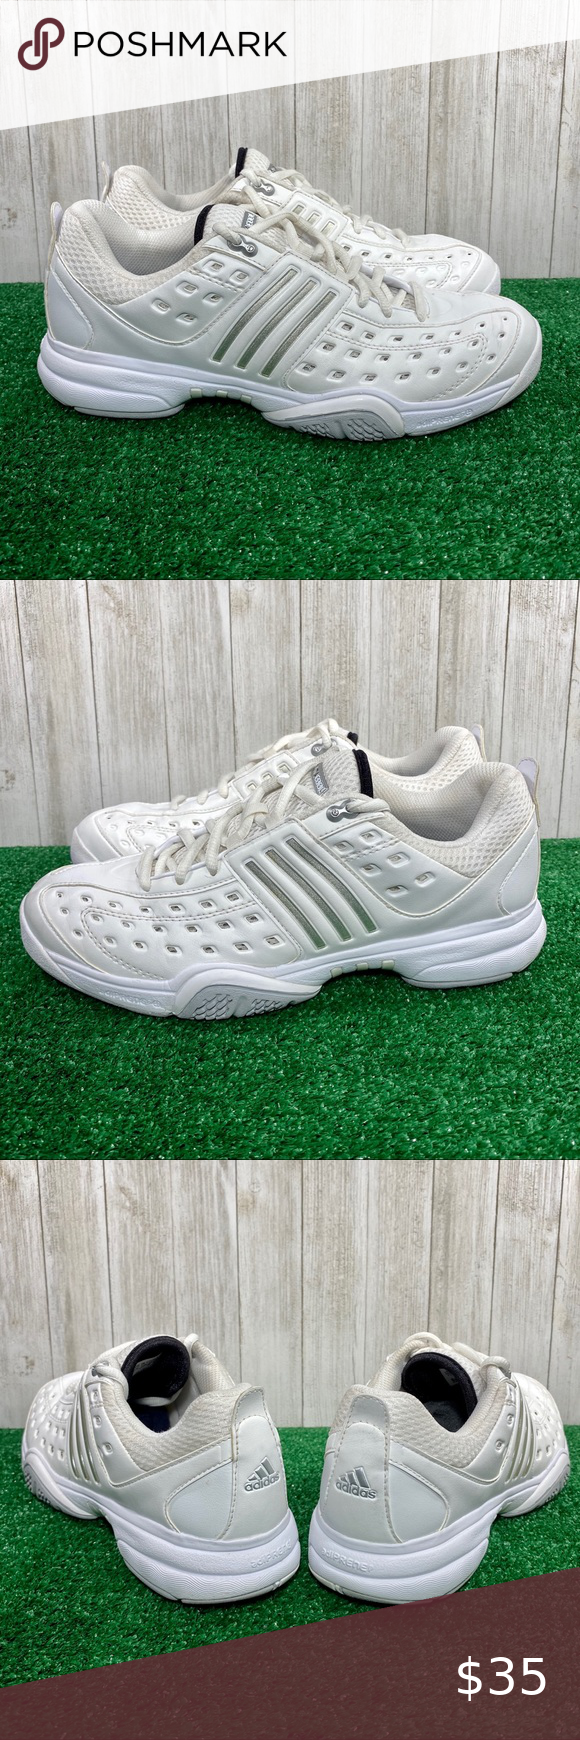 trimestre Legibilidad Multiplicación  Adidas Climacool Adiprene Tennis Shoes White in 2020 | Tennis shoes, Shoes,  Clothes design